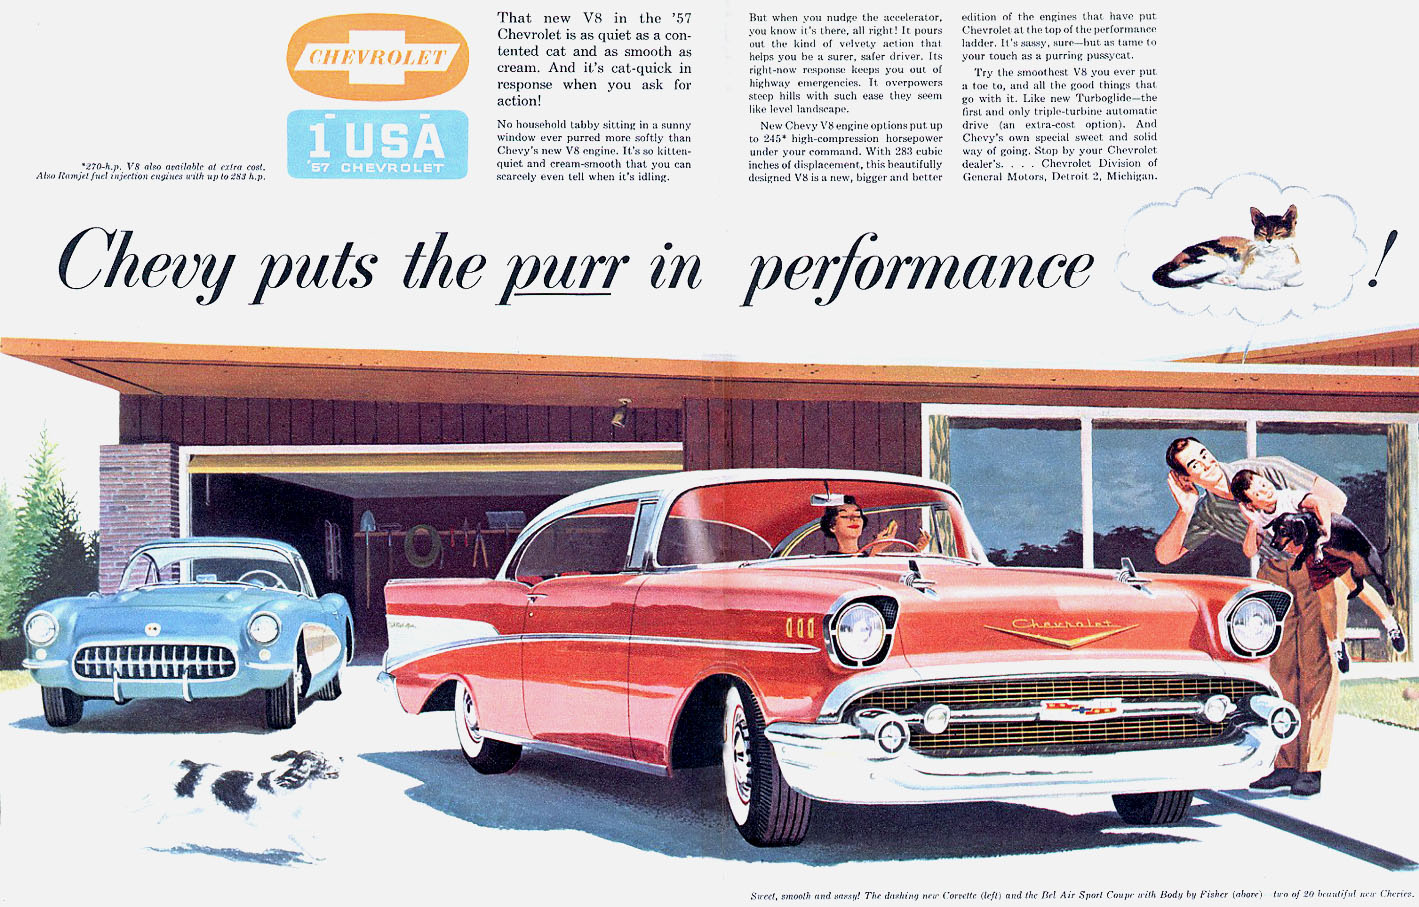 1956 bel air for sale submited images - 1955 1956 1957 Ads Trifive Com 1955 Chevy 1956 Chevy 1957 Chevy Forum Talk About Your 55 Chevy 56 Chevy 57 Chevy Belair 210 150 Sedans Nomads